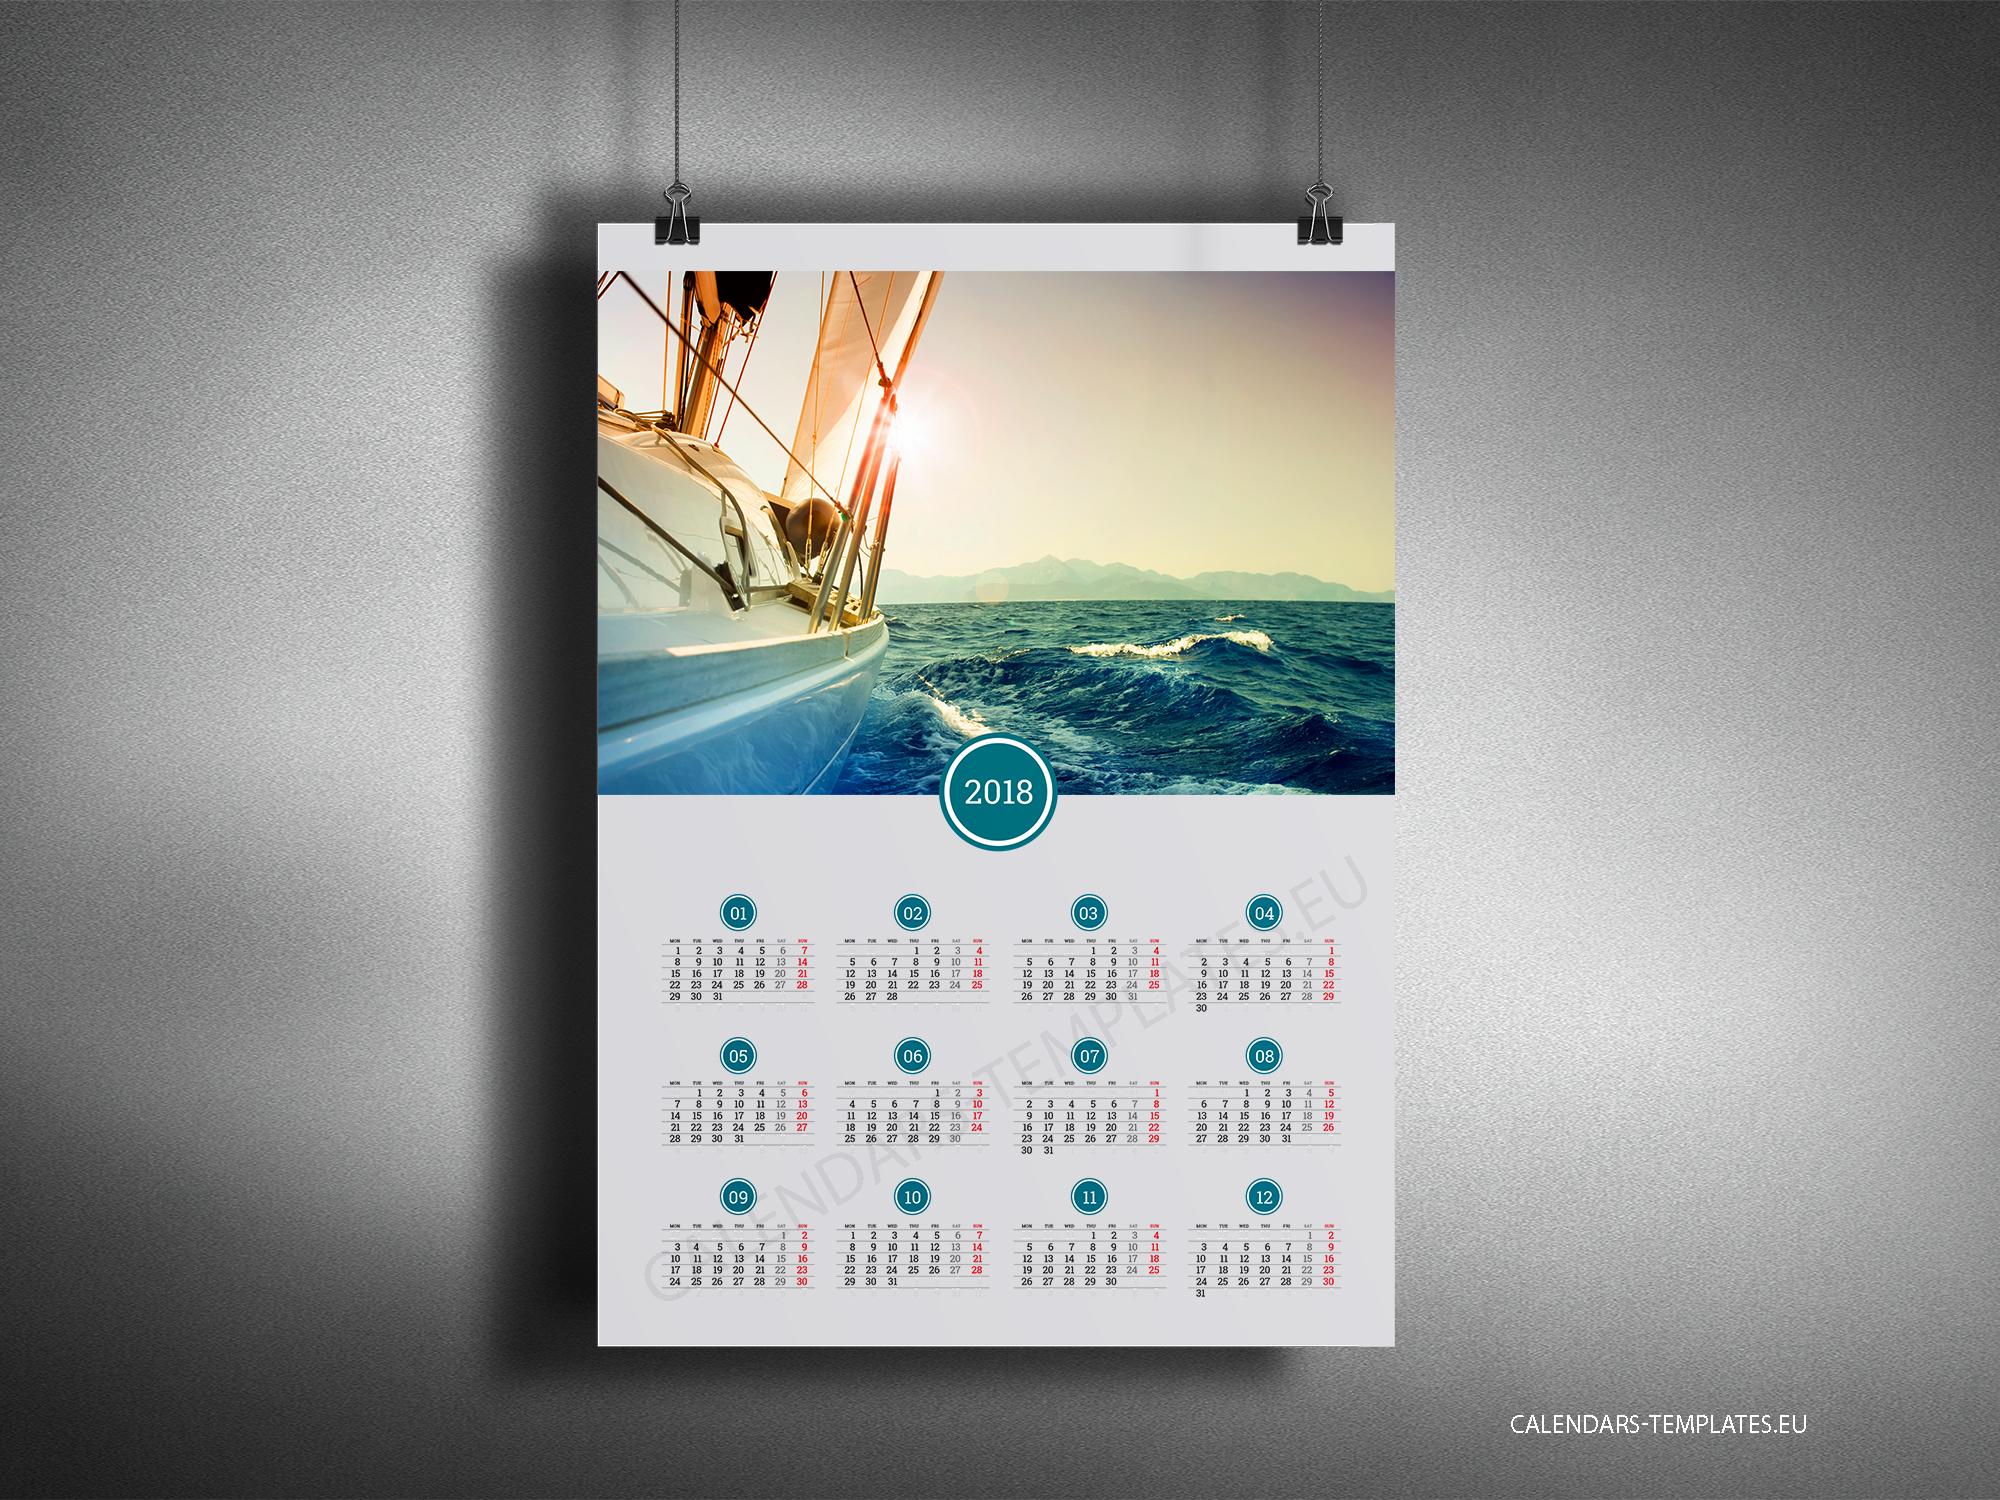 Marvelous Year Calendar 2018. Wall Poster Calendar Inside Calendar Sample Design